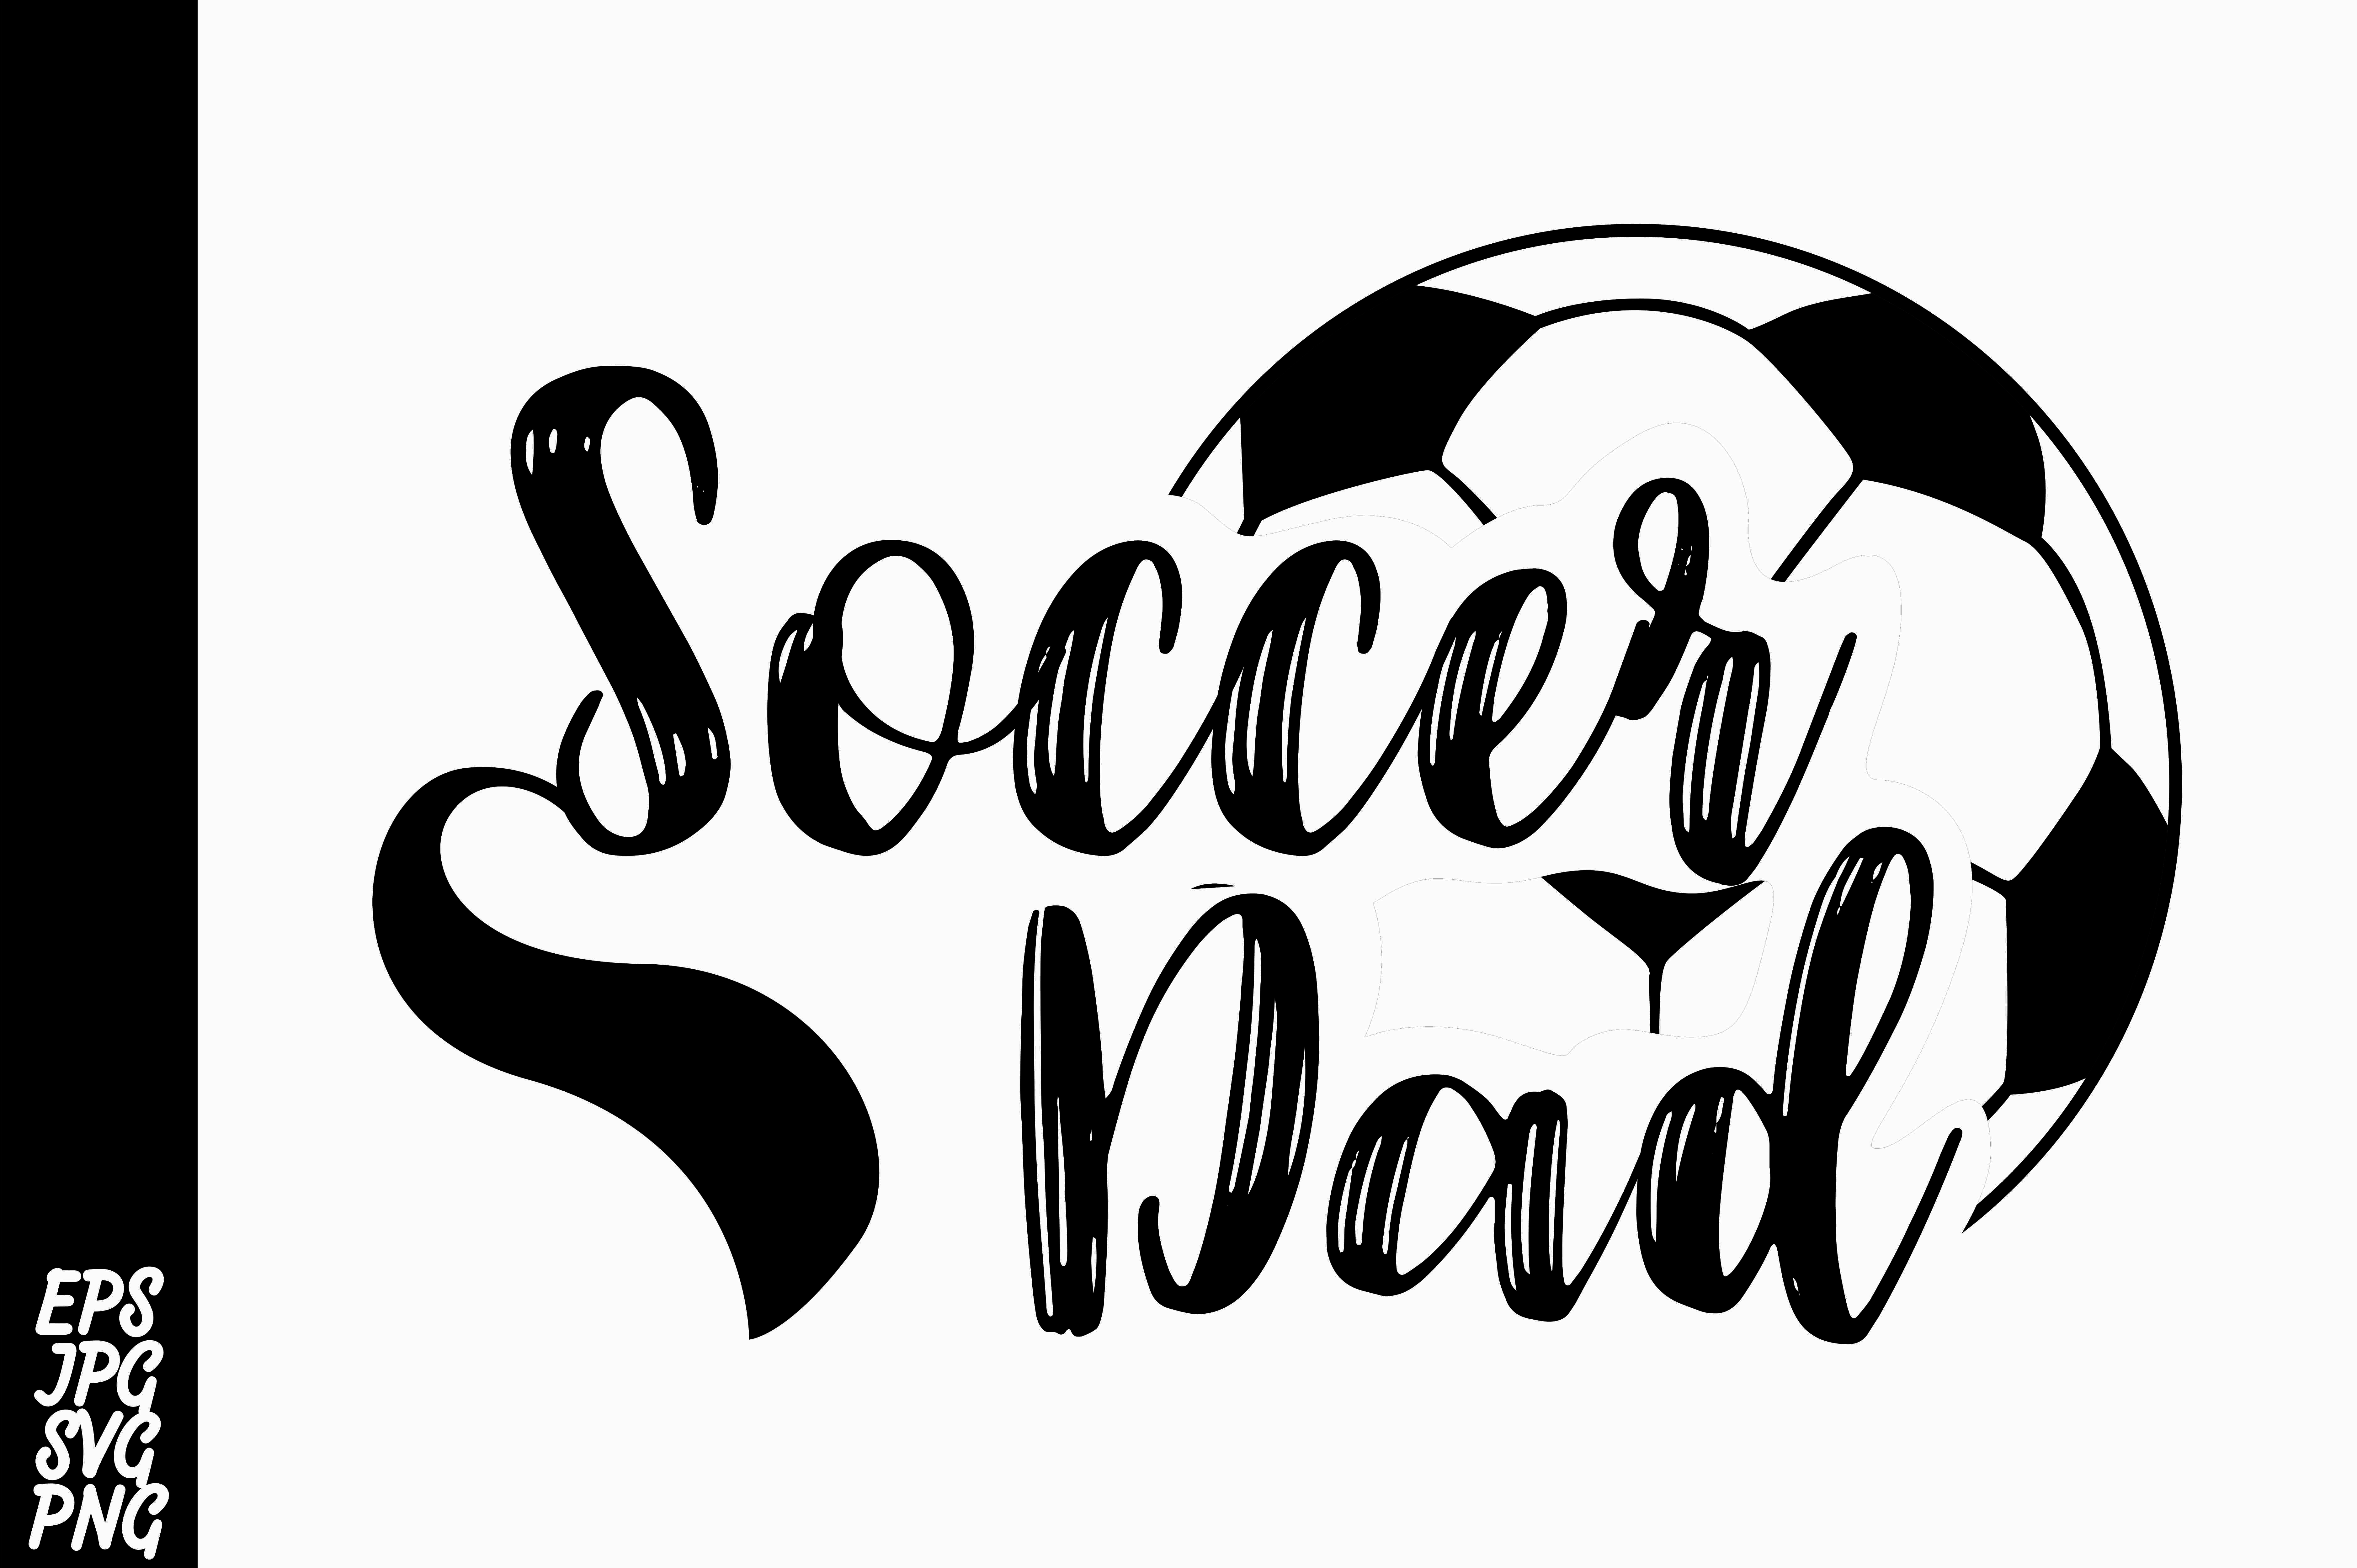 Download Free Soccer Dad Graphic By Arsa Adjie Creative Fabrica for Cricut Explore, Silhouette and other cutting machines.